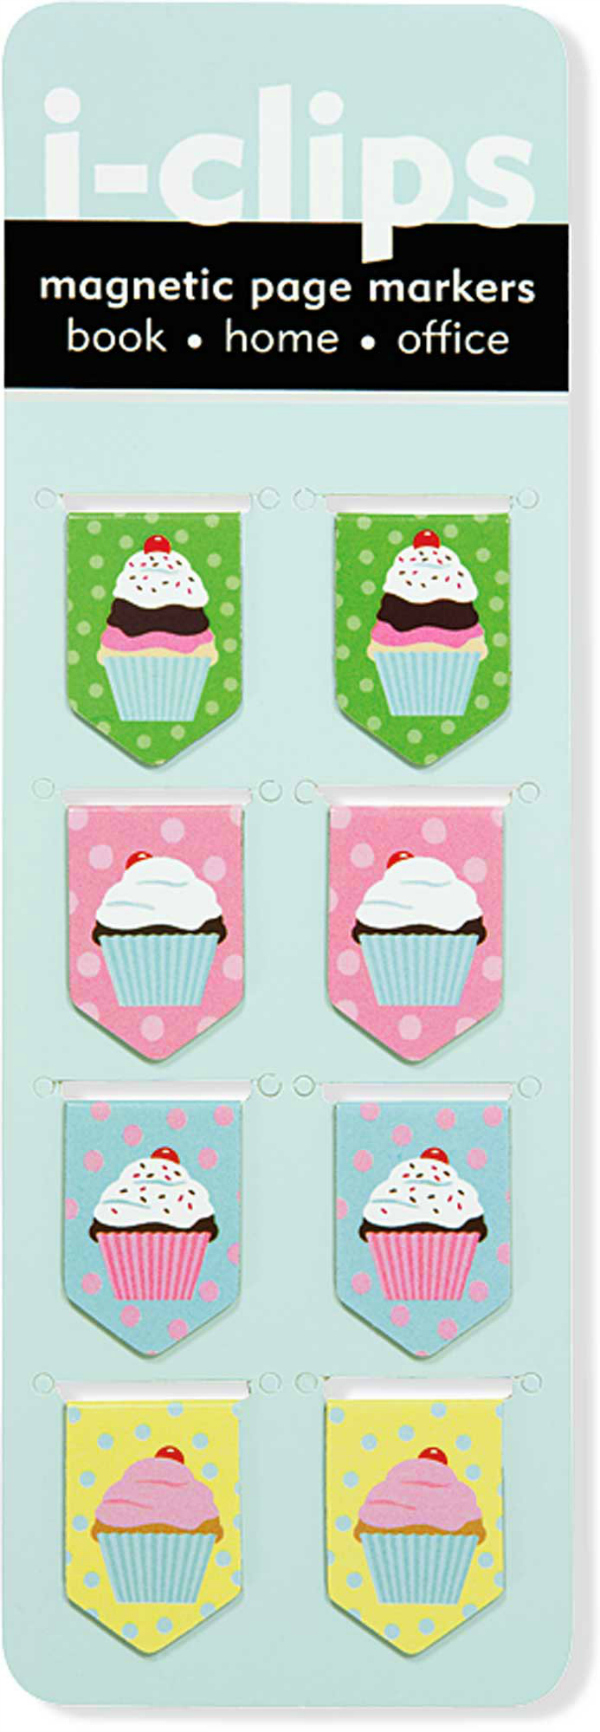 iClips Magnetic Cupcake Bookmarks